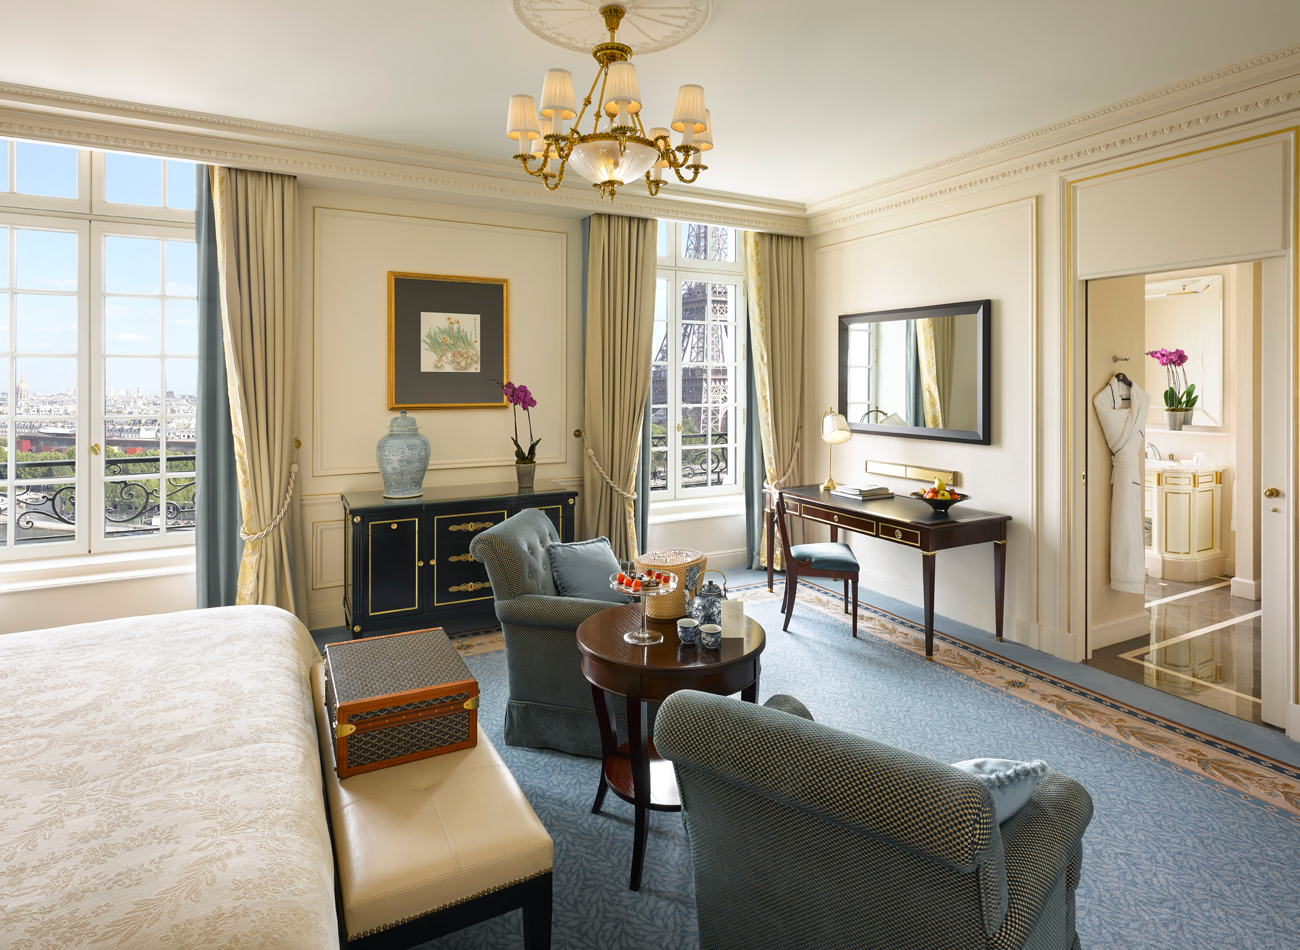 Maximize shangri la luxury circle upgrades and benefits for Terrace eiffel tower view room shangri la